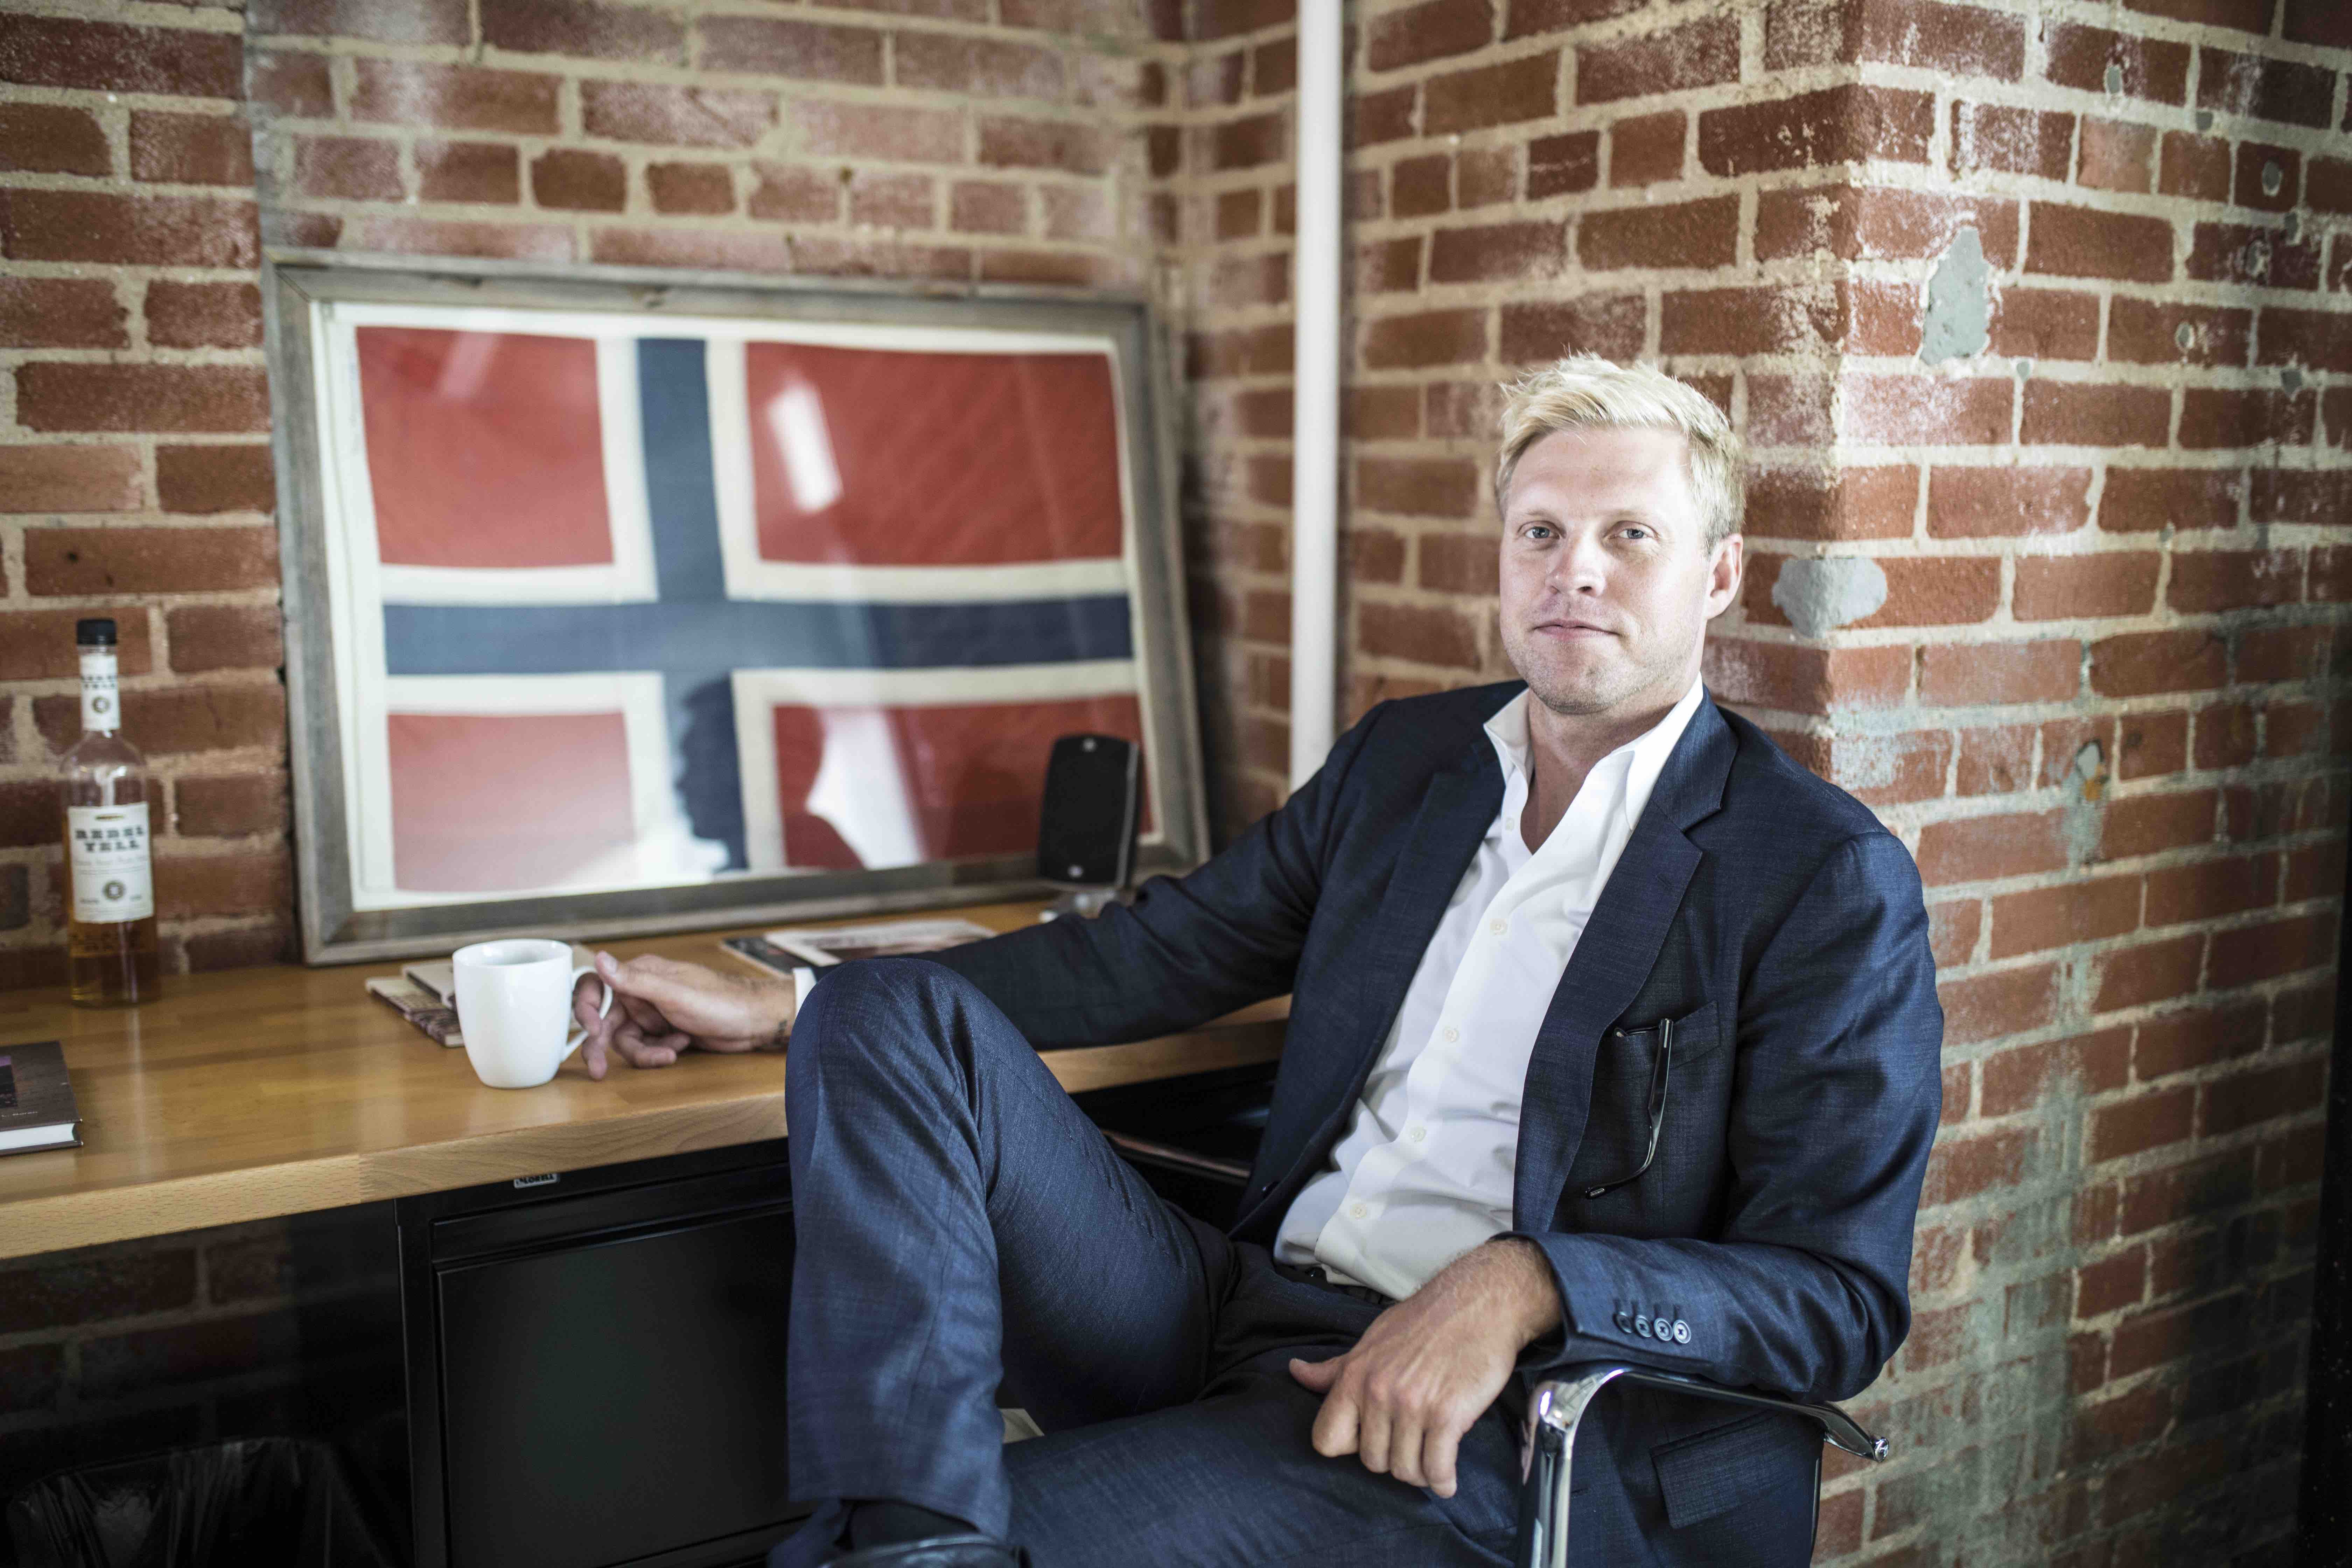 Evan Anderson Named One of Most Admired CEOs in Oklahoma